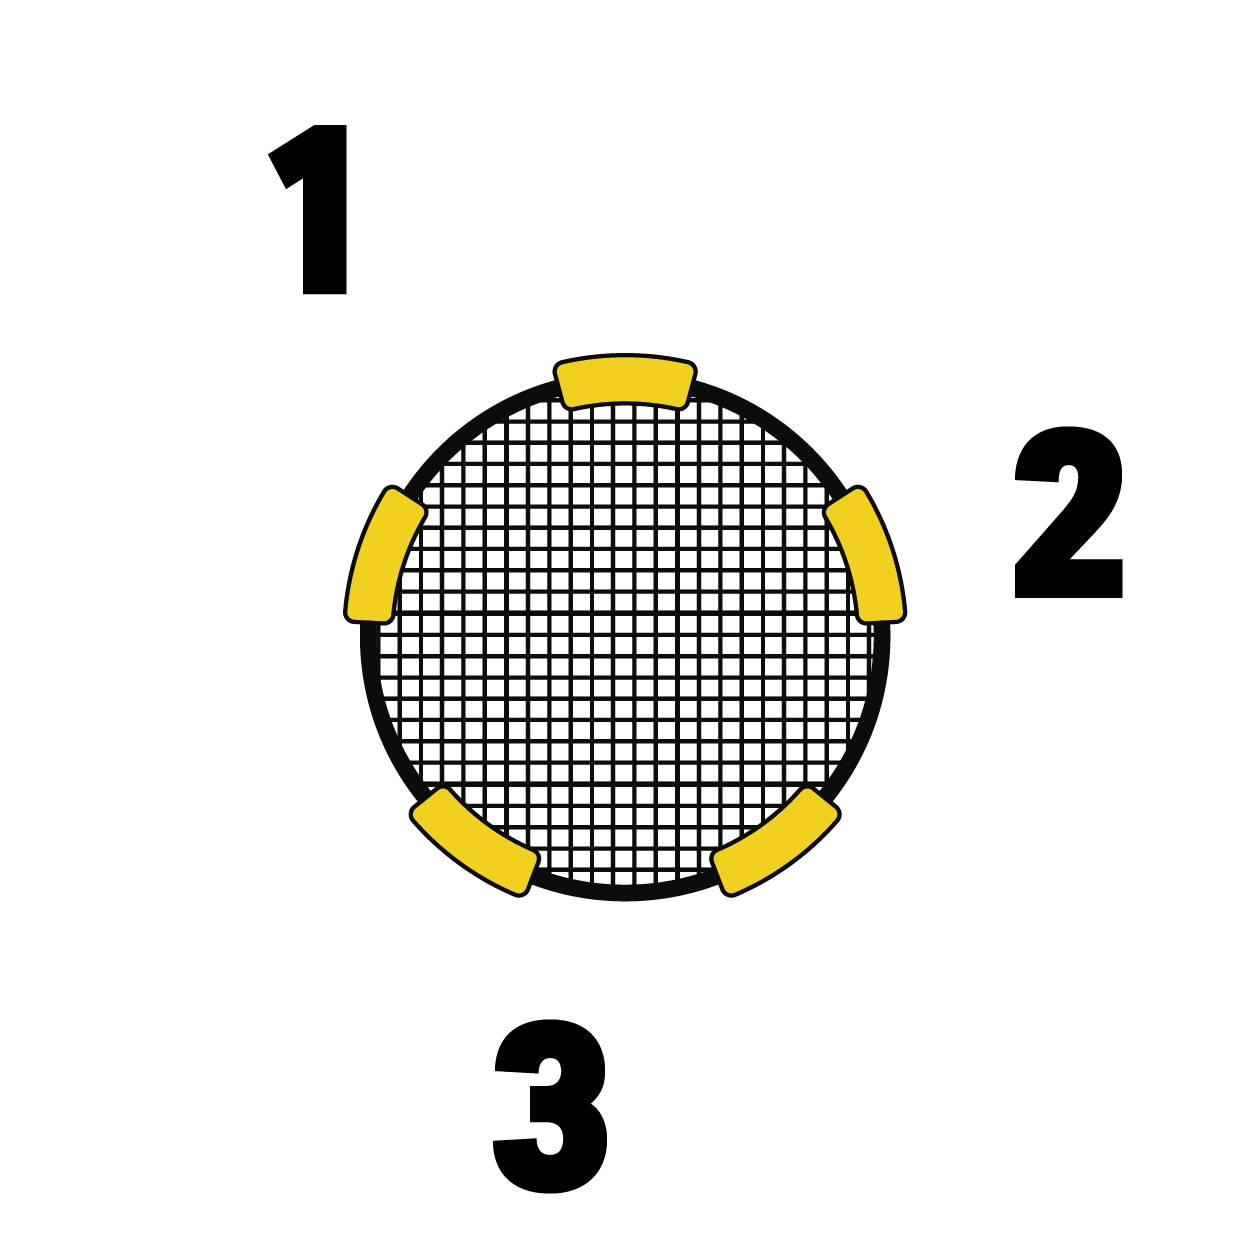 picture regarding Hand and Foot Rules Printable called Yourself arrived towards the instantly issue Spikeball Shop